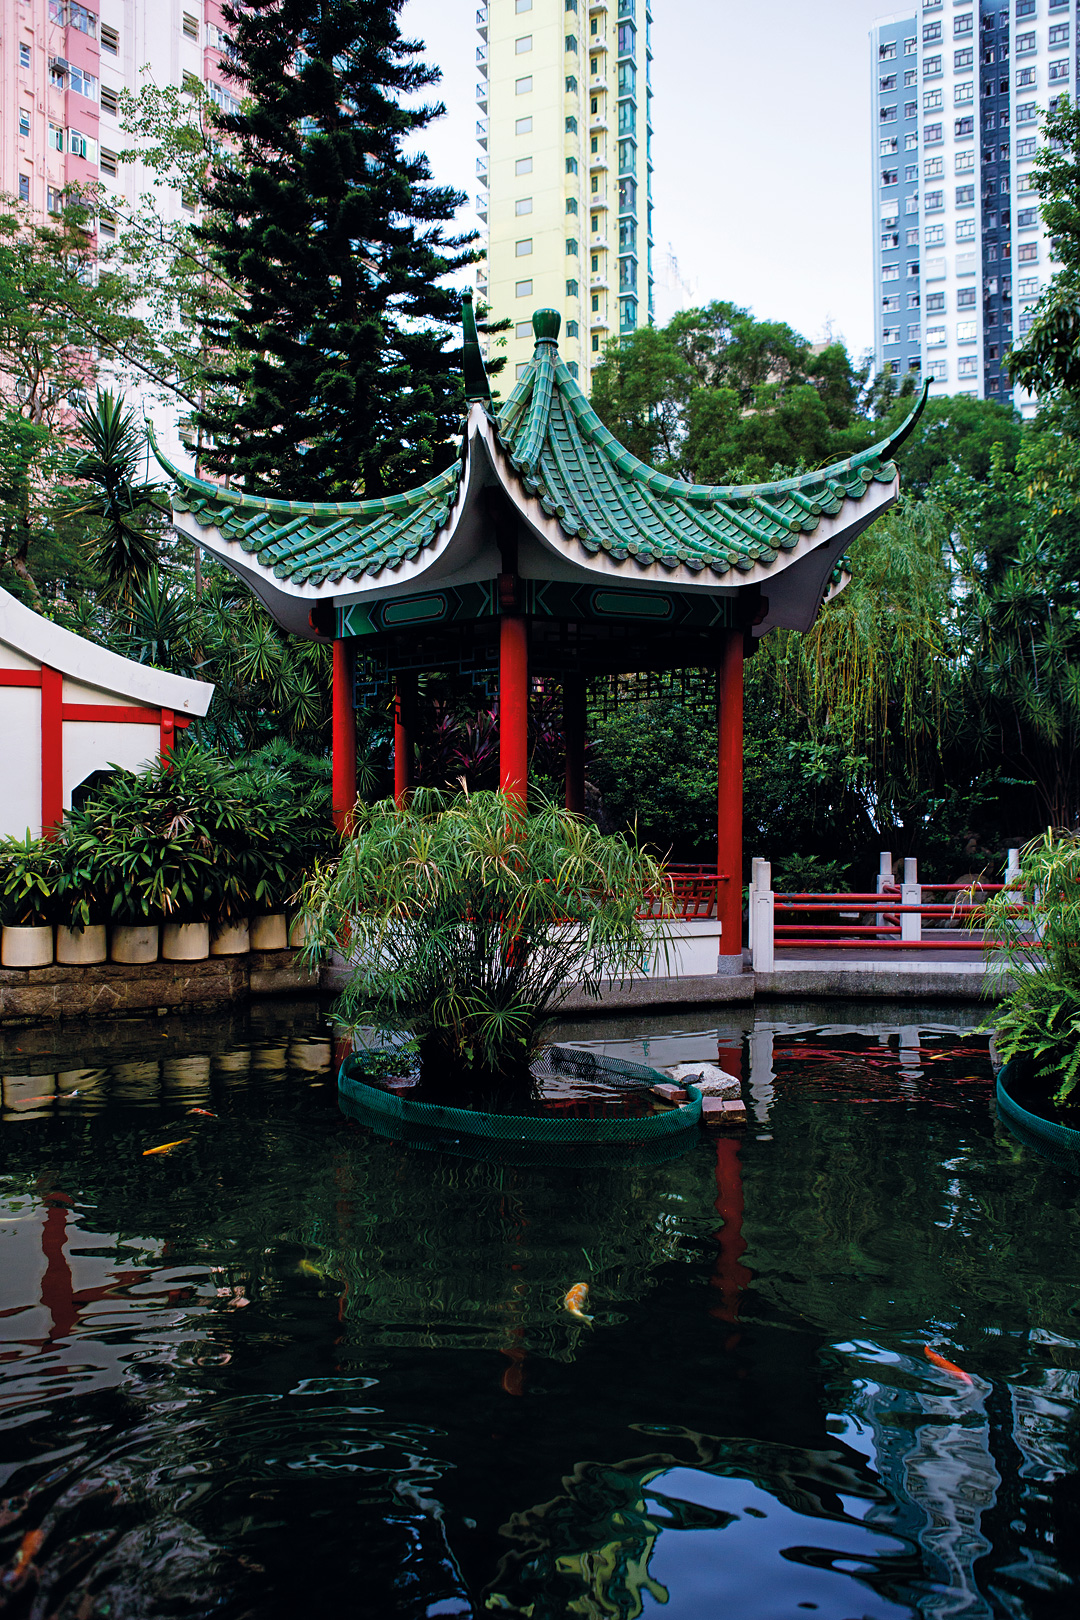 The lotus pavilion at Hollywood Road Park.